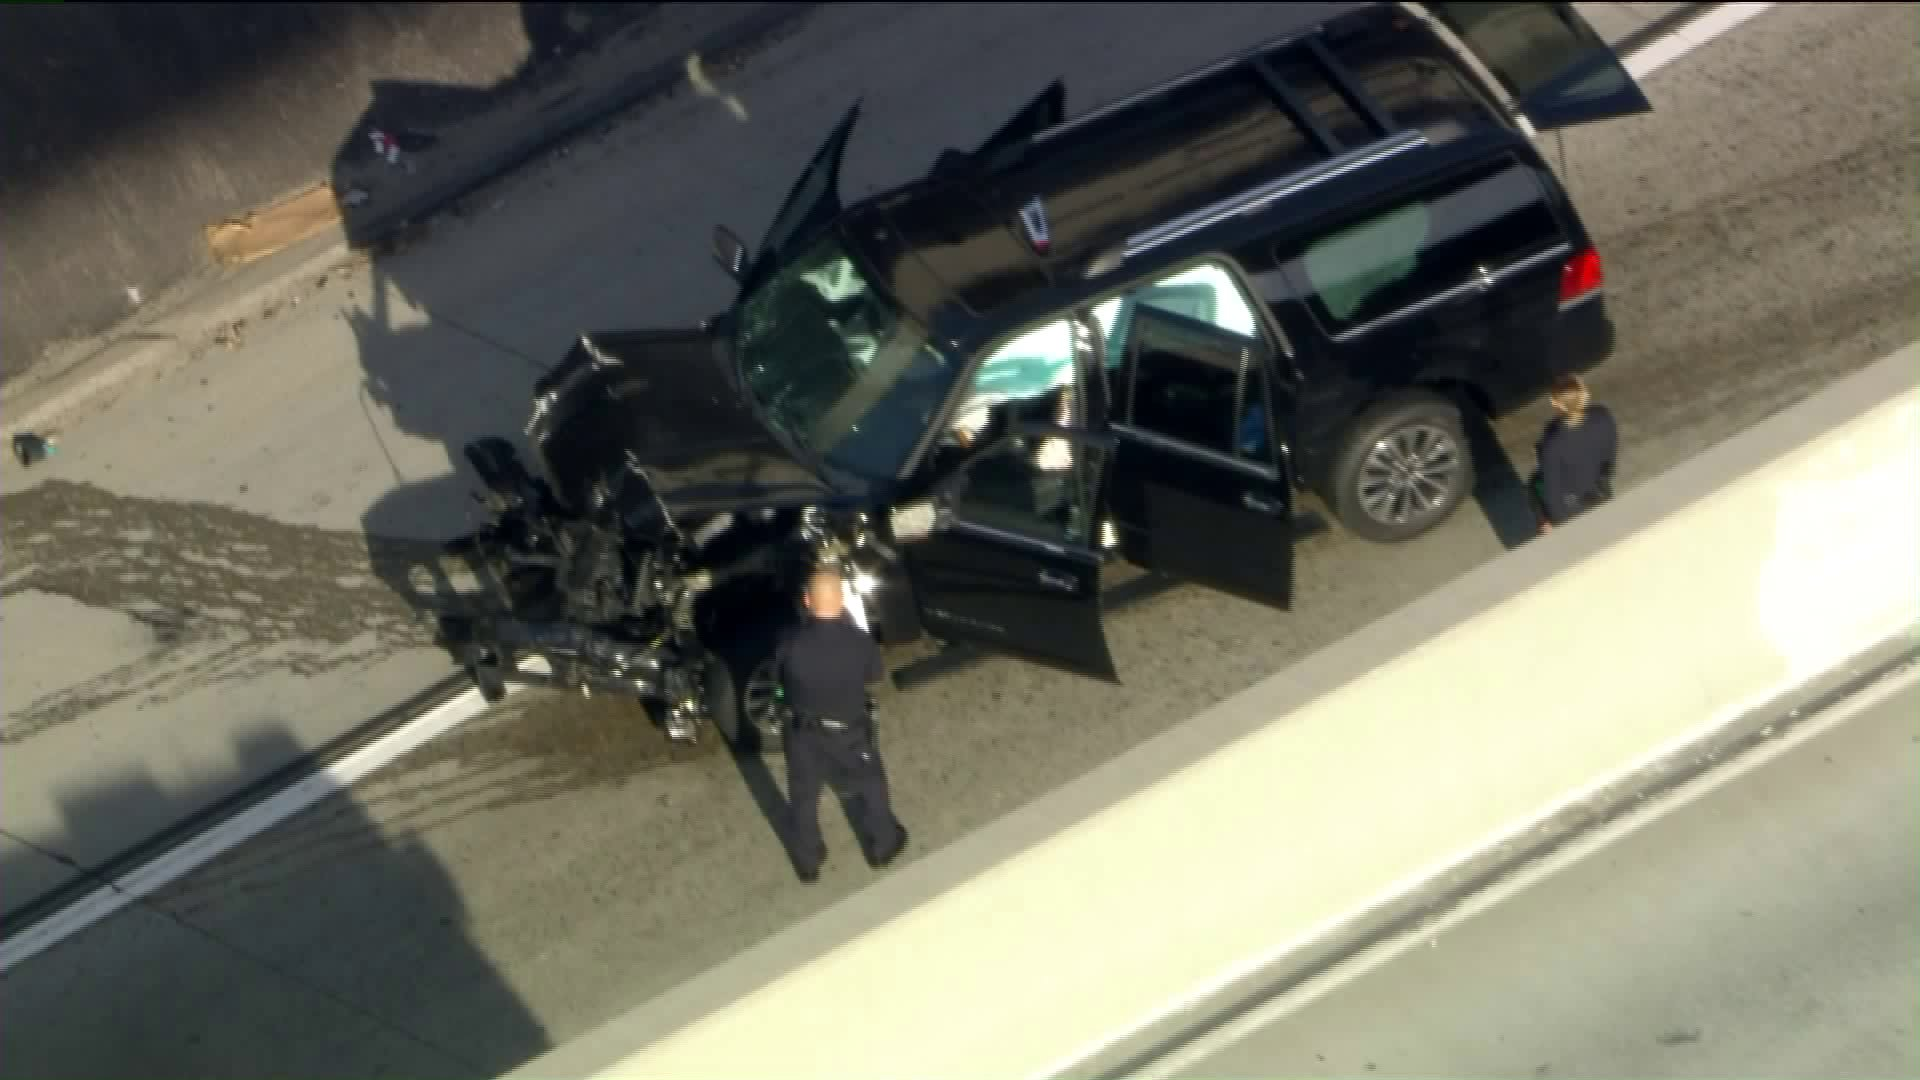 An SUV is seen after crashing on the 110 Freeway in South L.A. on Feb. 27, 2020. (KTLA)